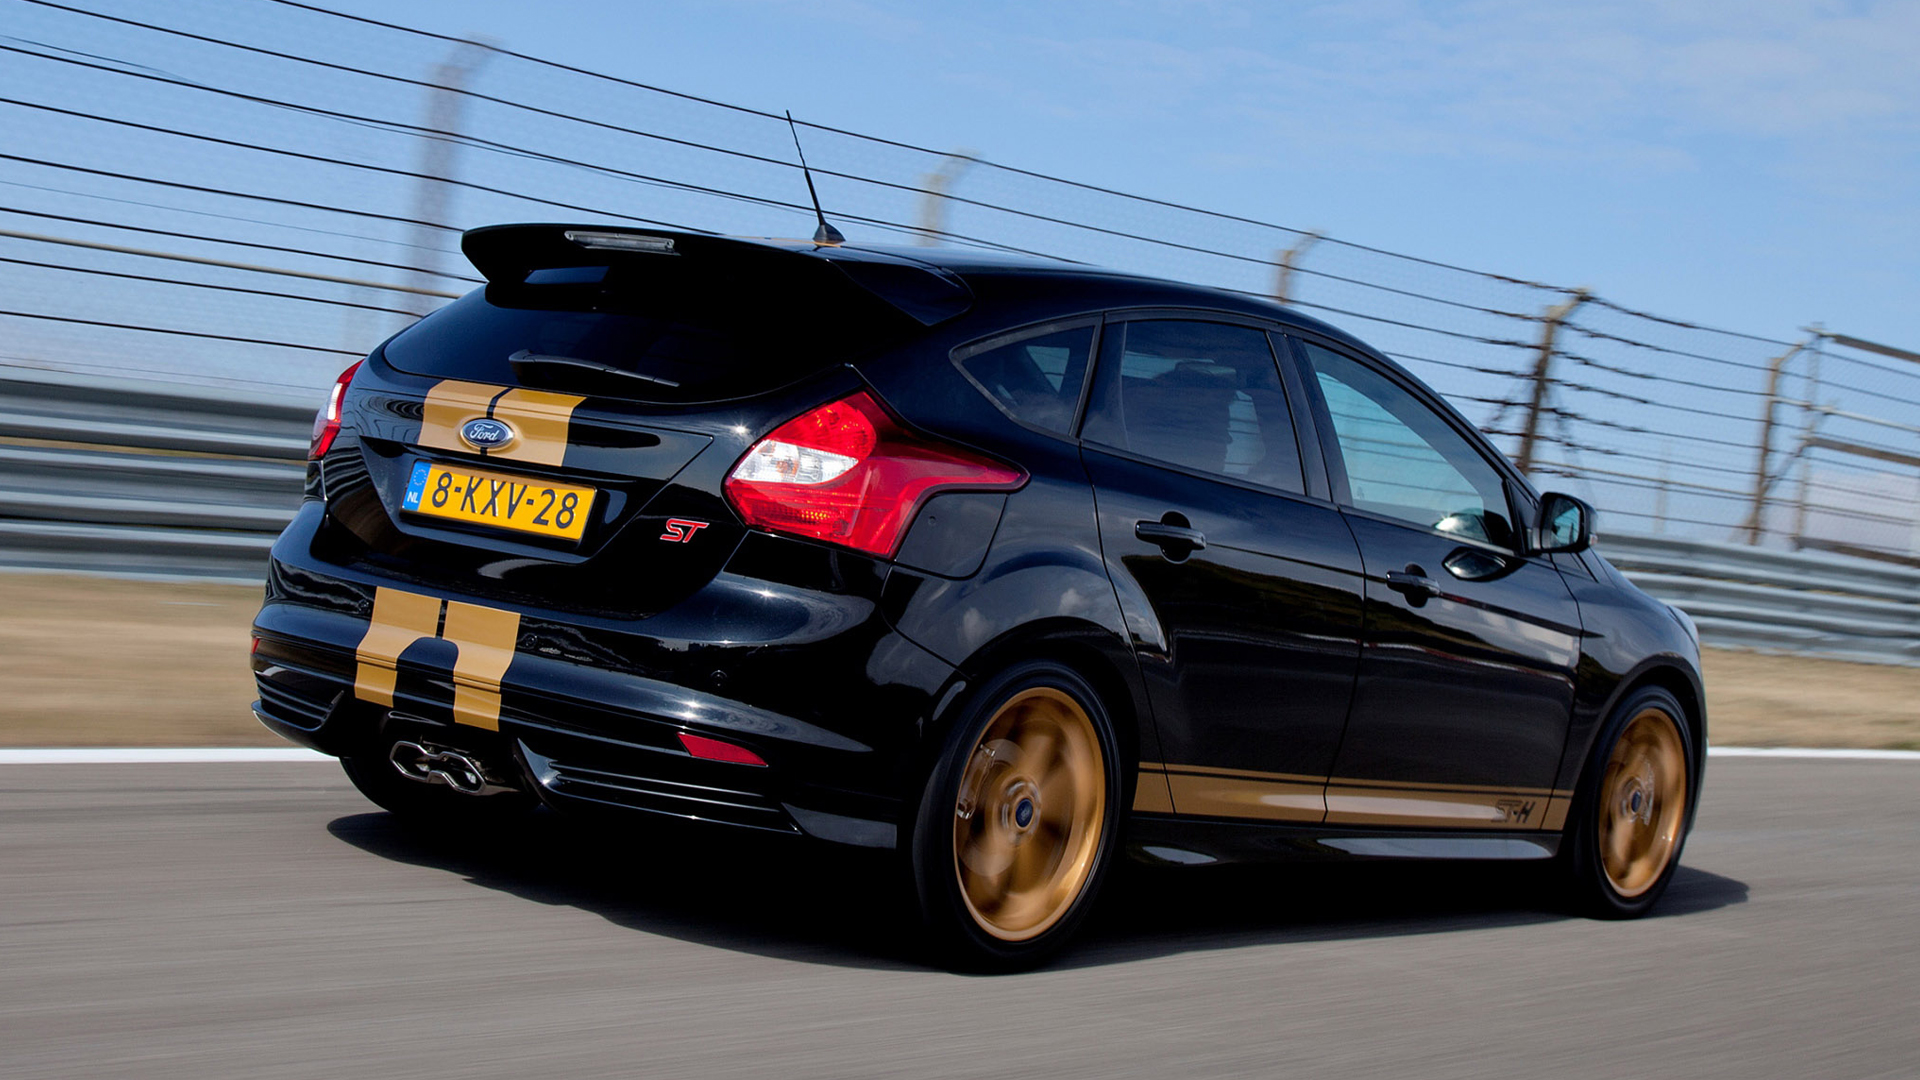 focus st h 2013 ford focus st h ford focus st h wallpaper ford focus 1920x1080